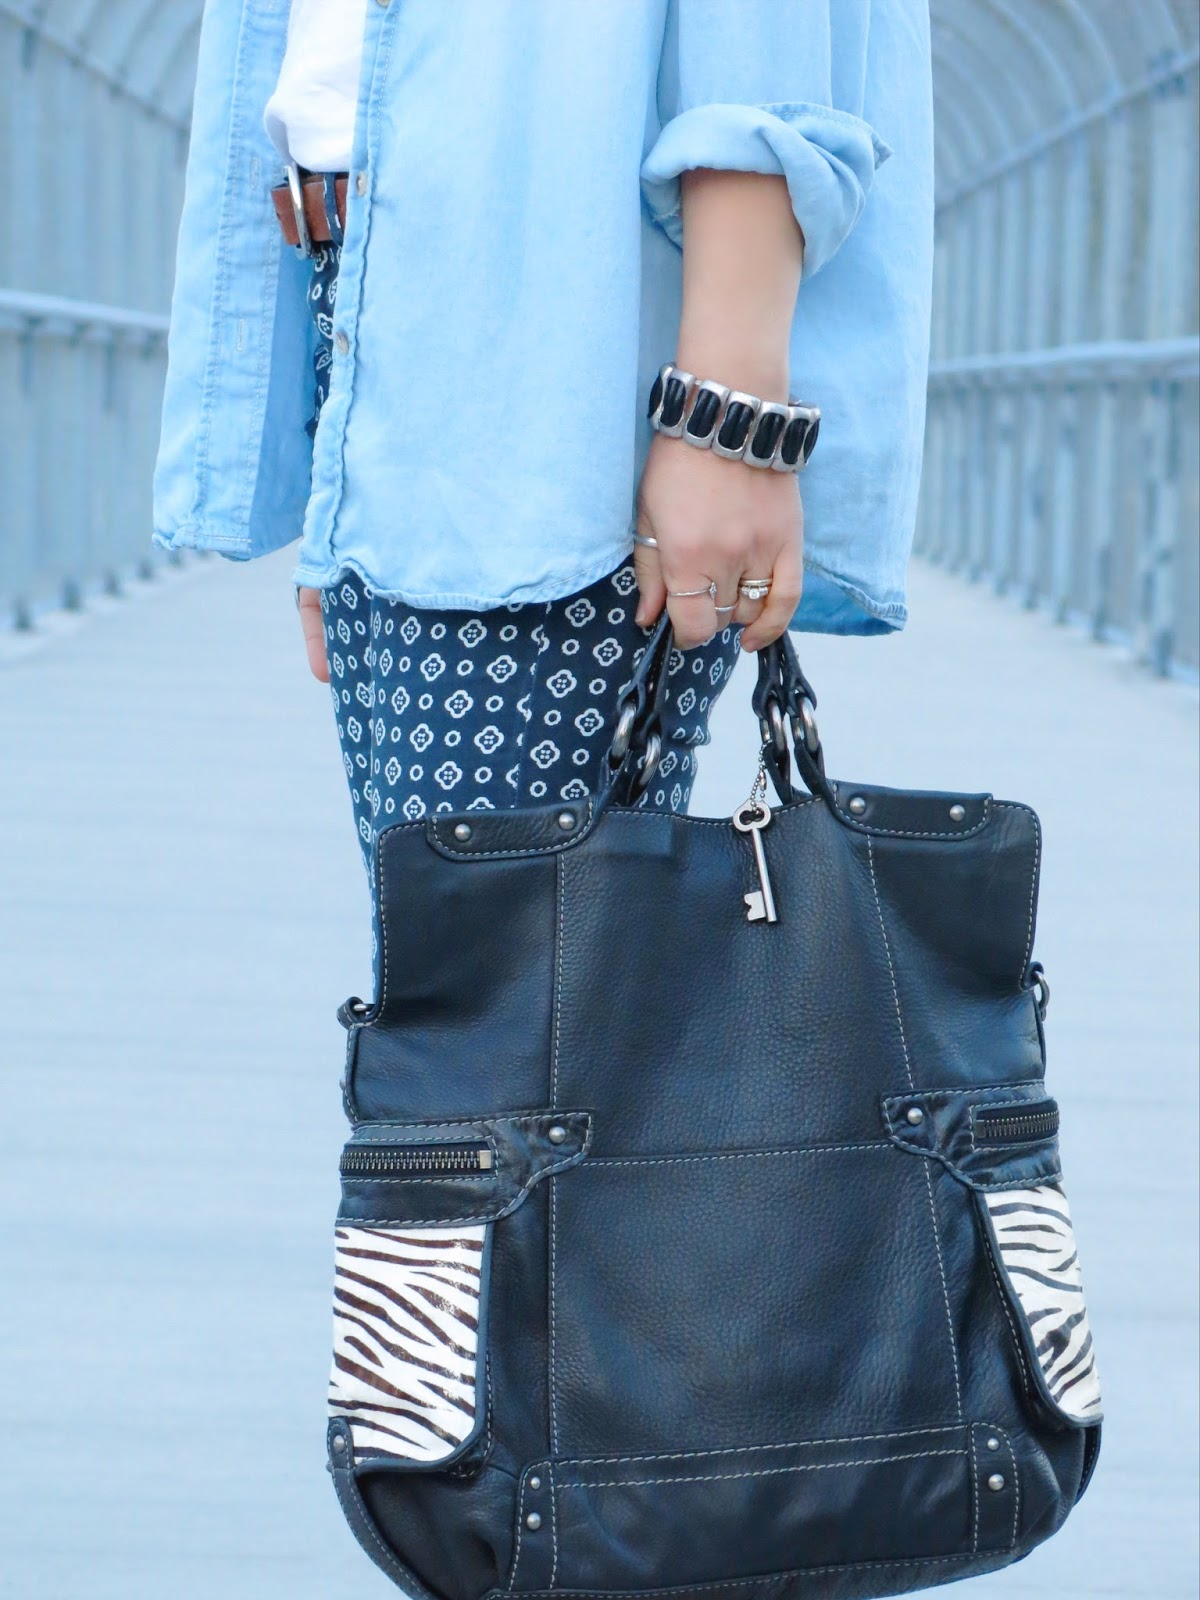 chambray shirt, printed pants, zebra-printed Fossil bag, metal and leather bracelet